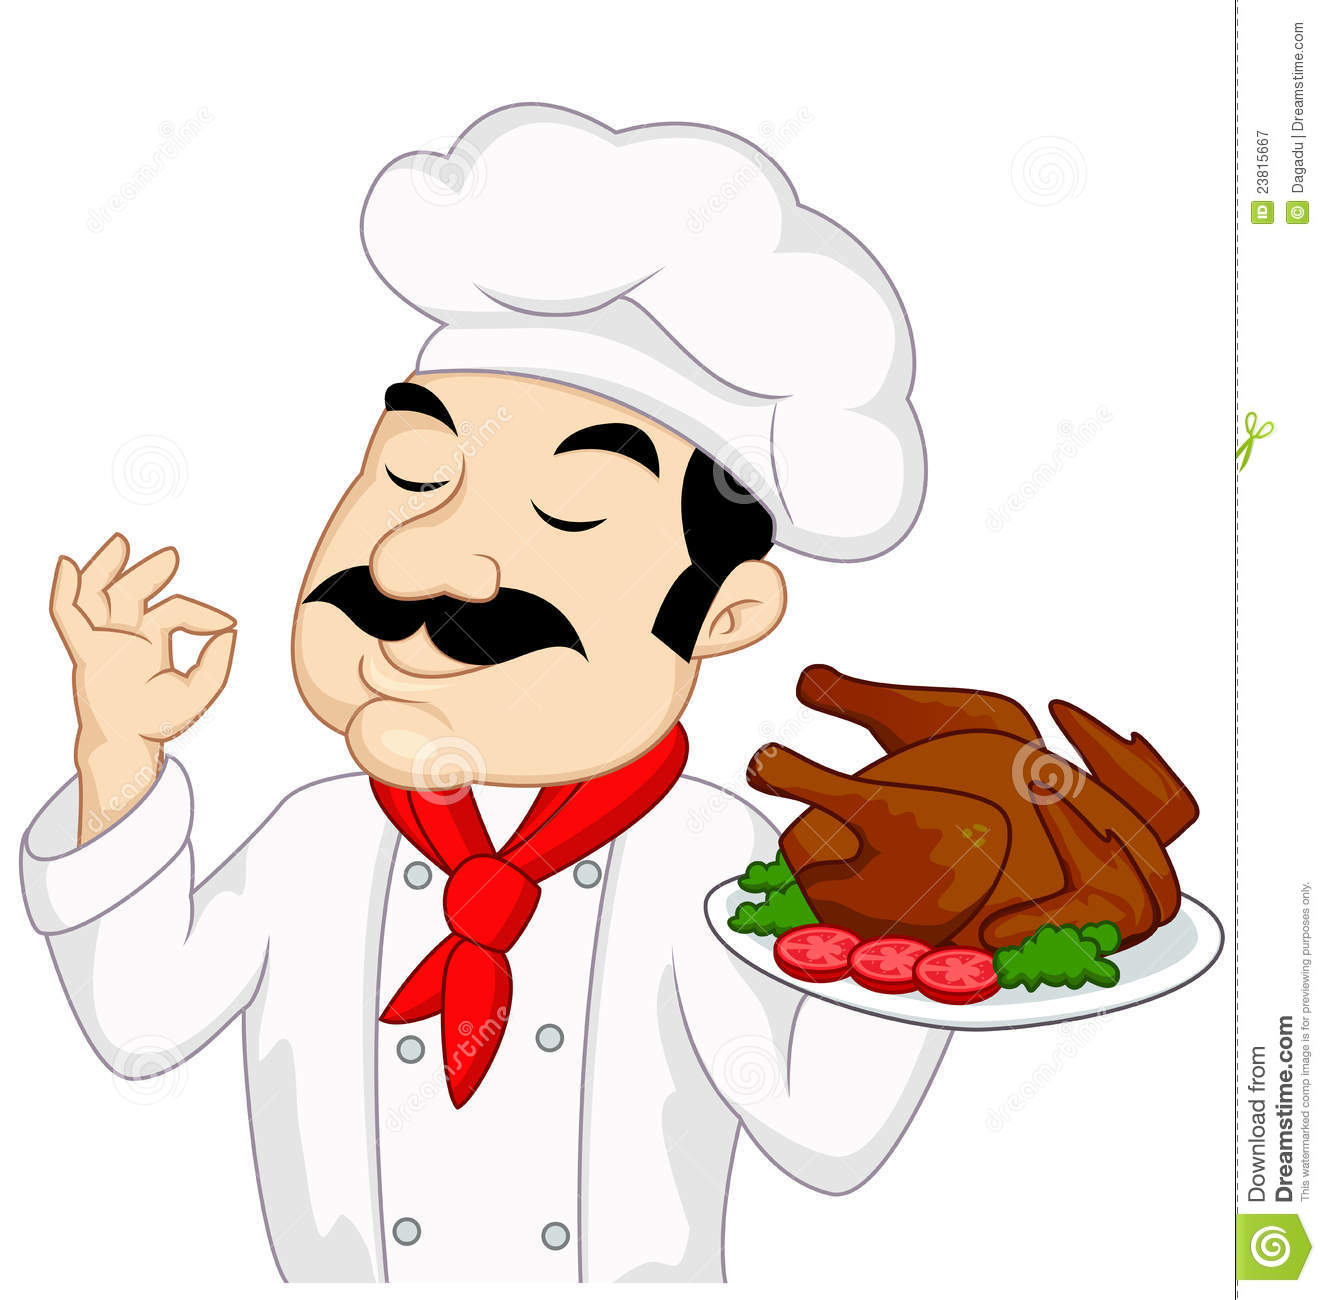 Clipart chefpictures clip art library 6+ Chef Clipart | ClipartLook clip art library